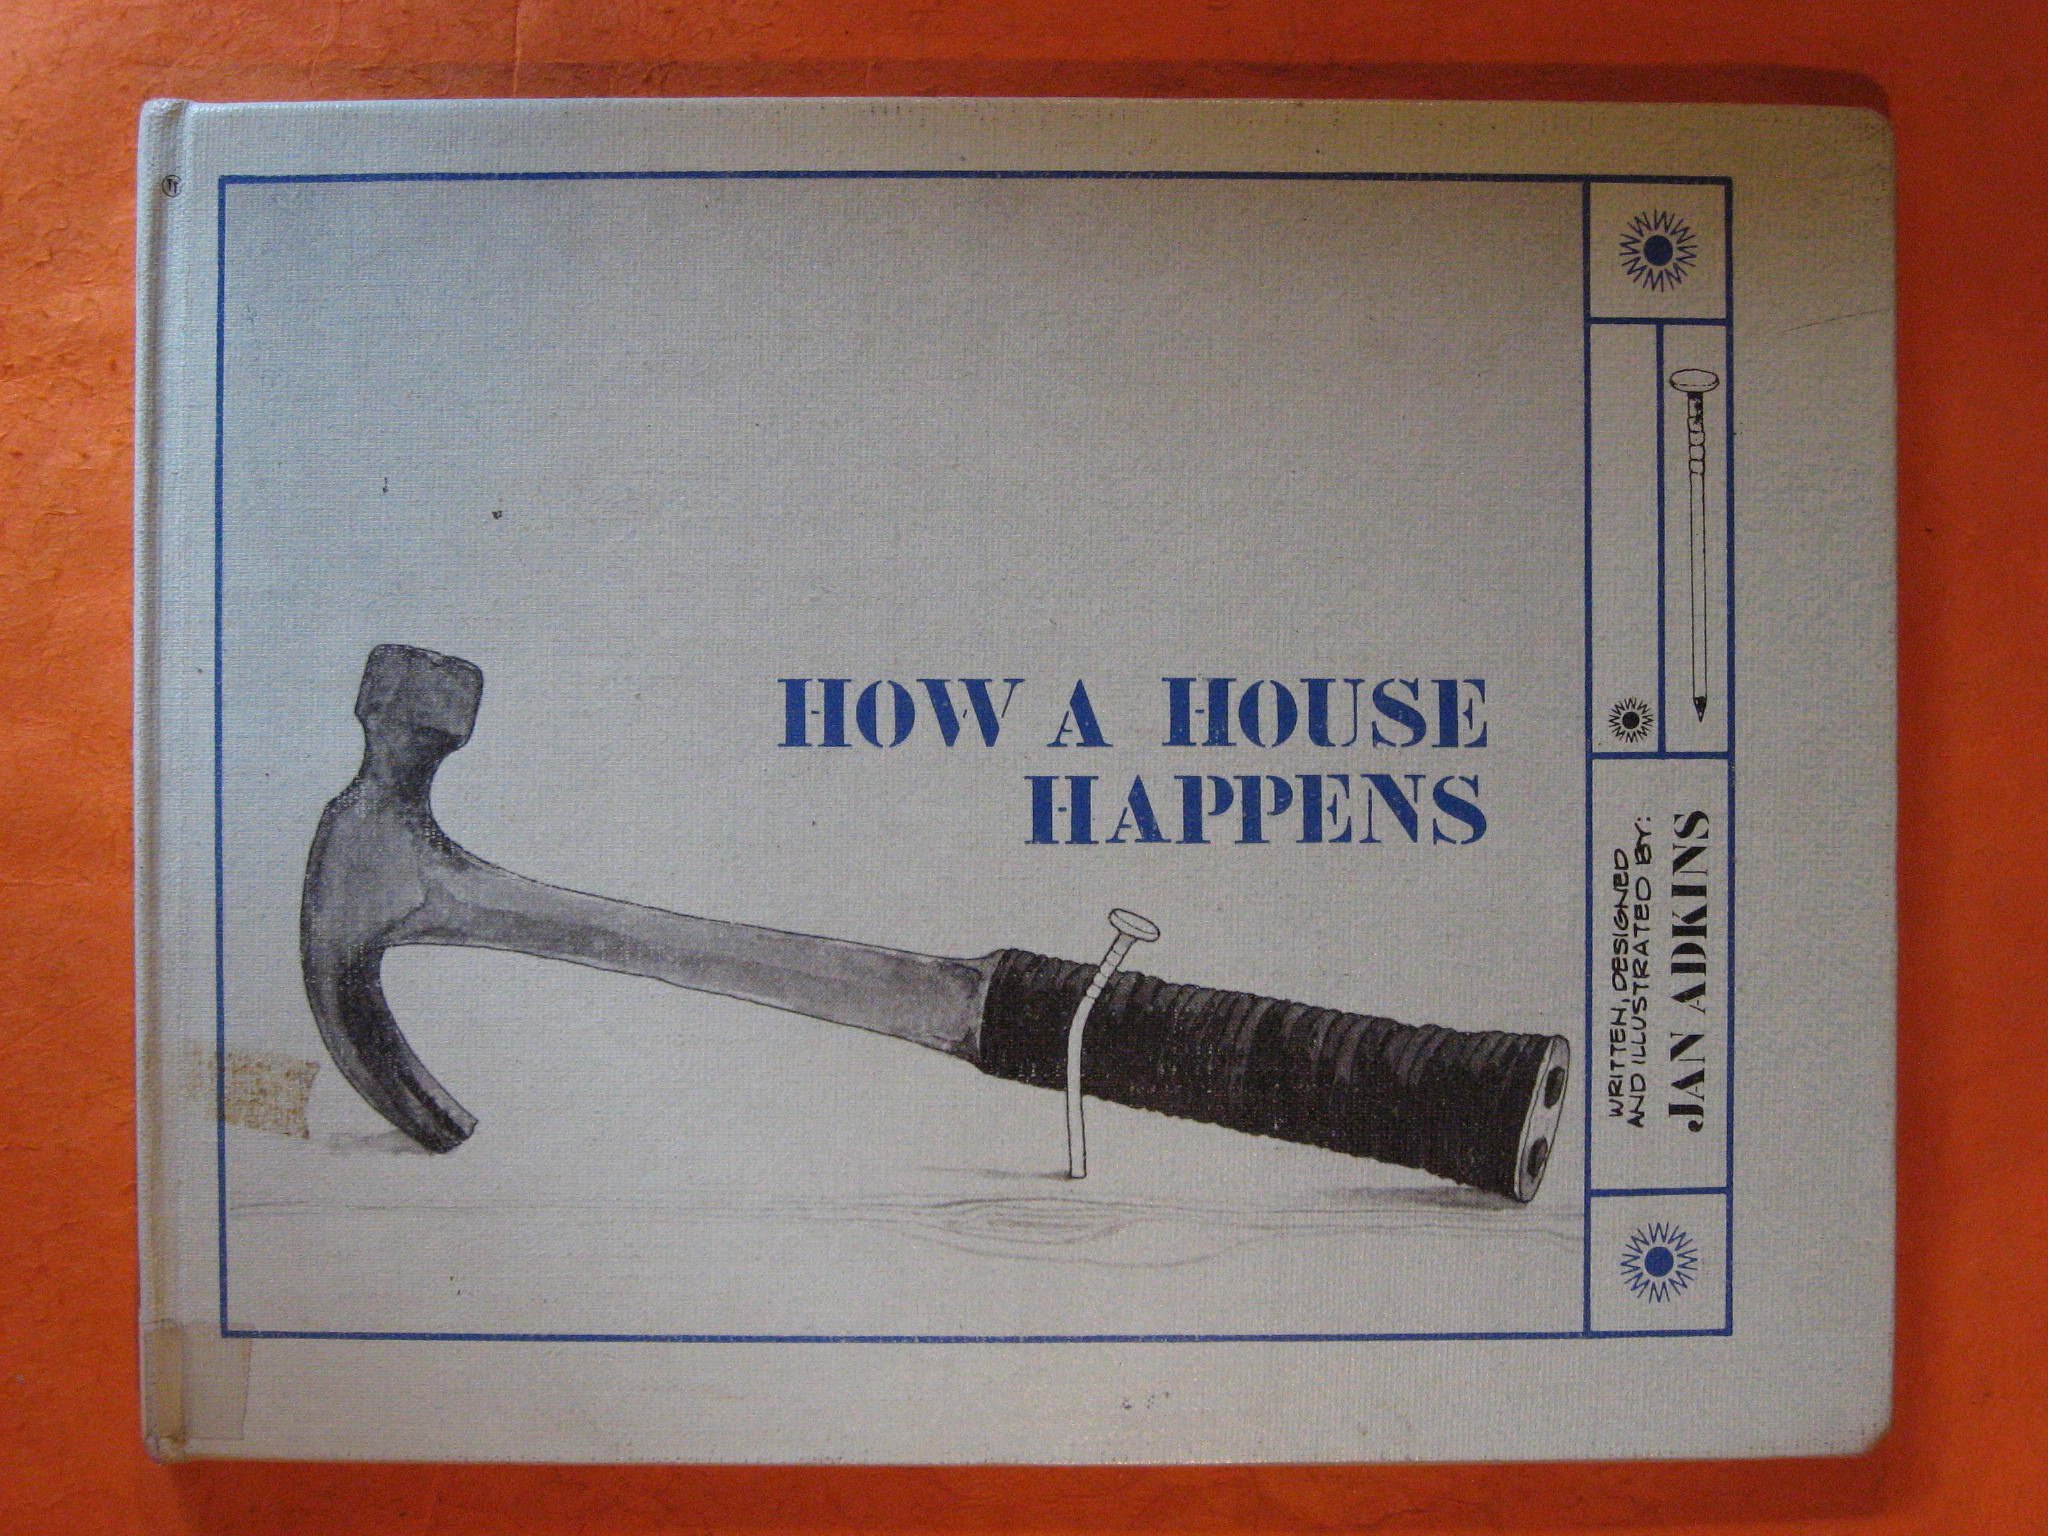 How a House Happens, Adkins, Jan